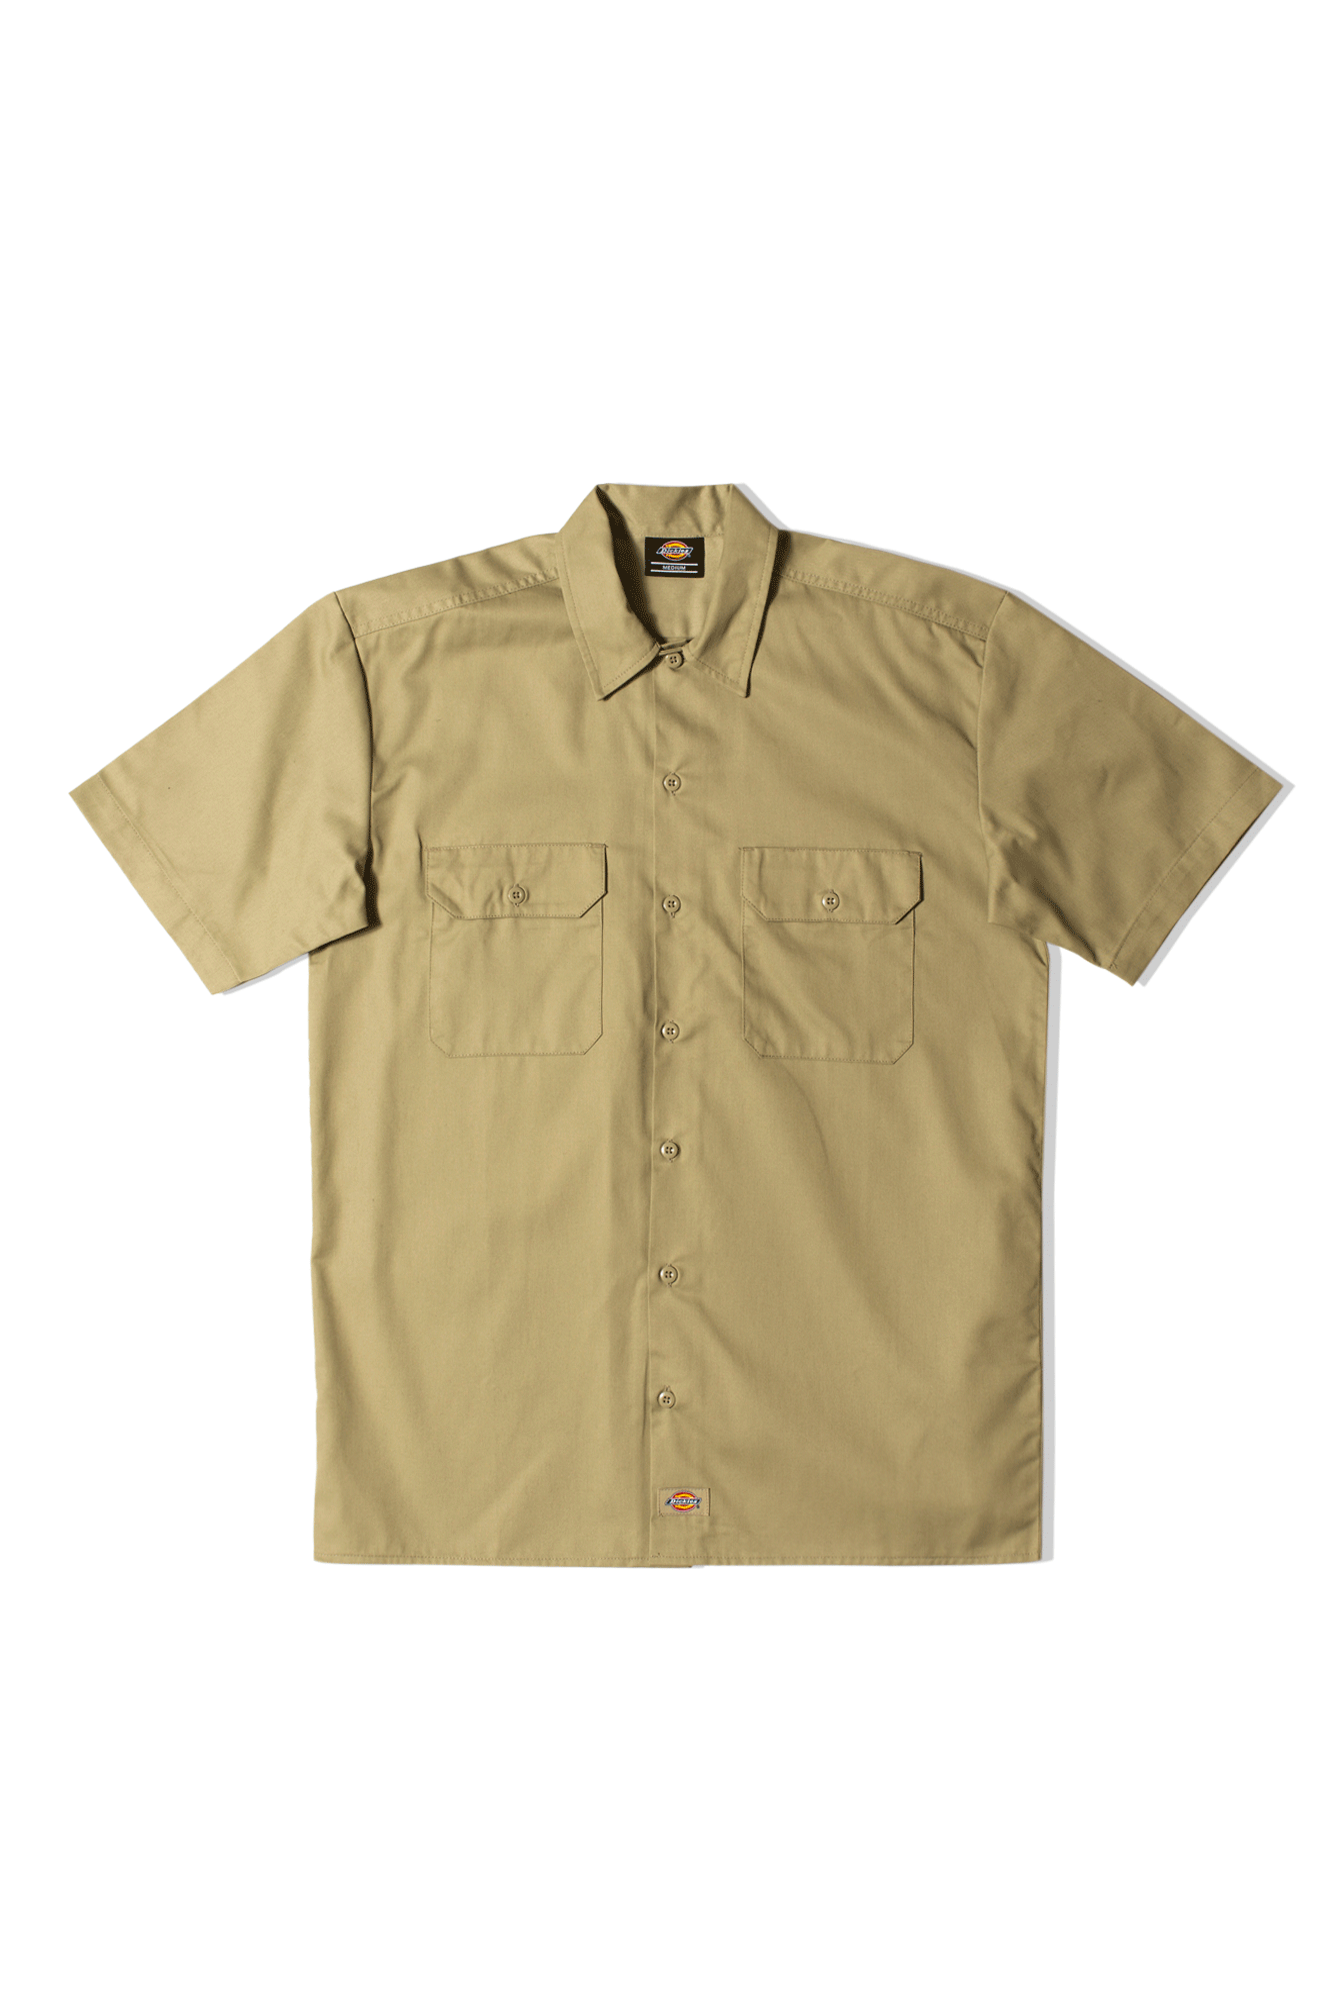 ShortSleeve Work Shirt Verde